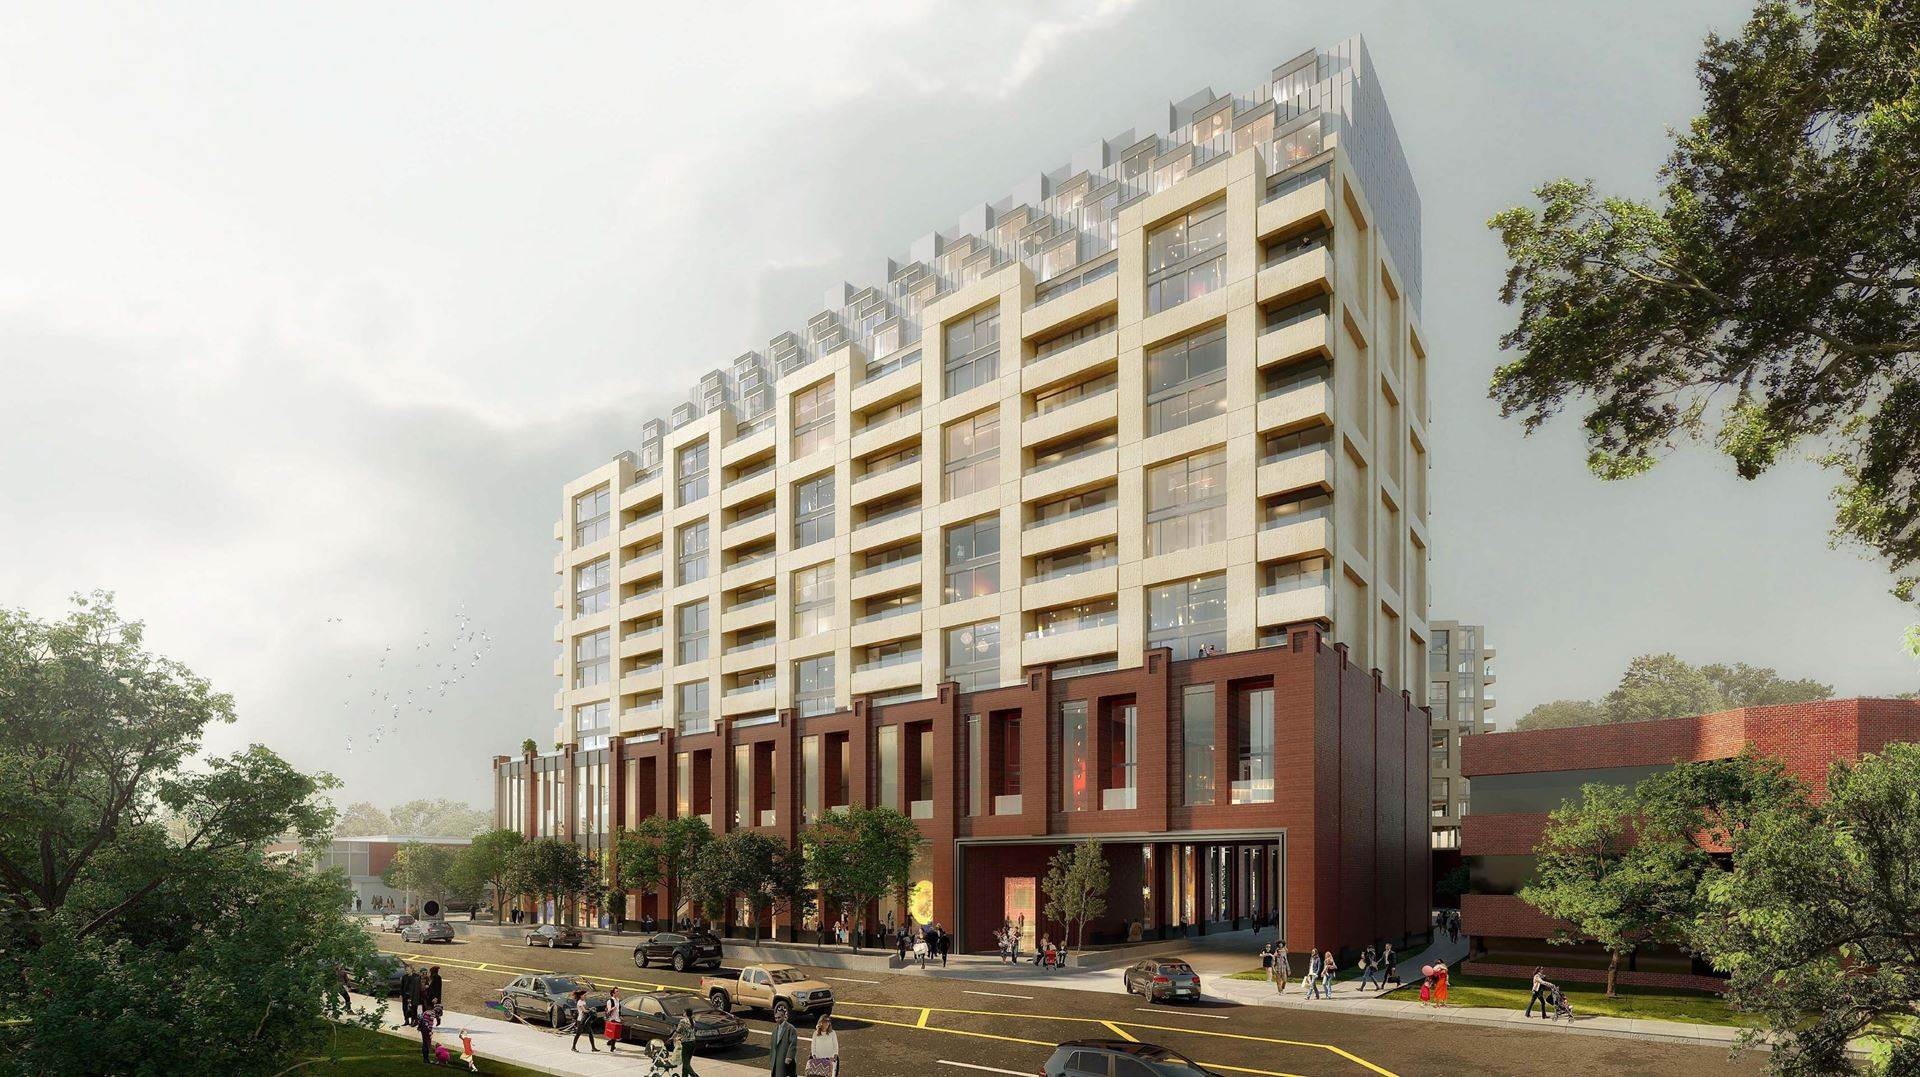 2020_06_10_03_01_07_lawrenceavenue_firstcapital_rendering_exterior